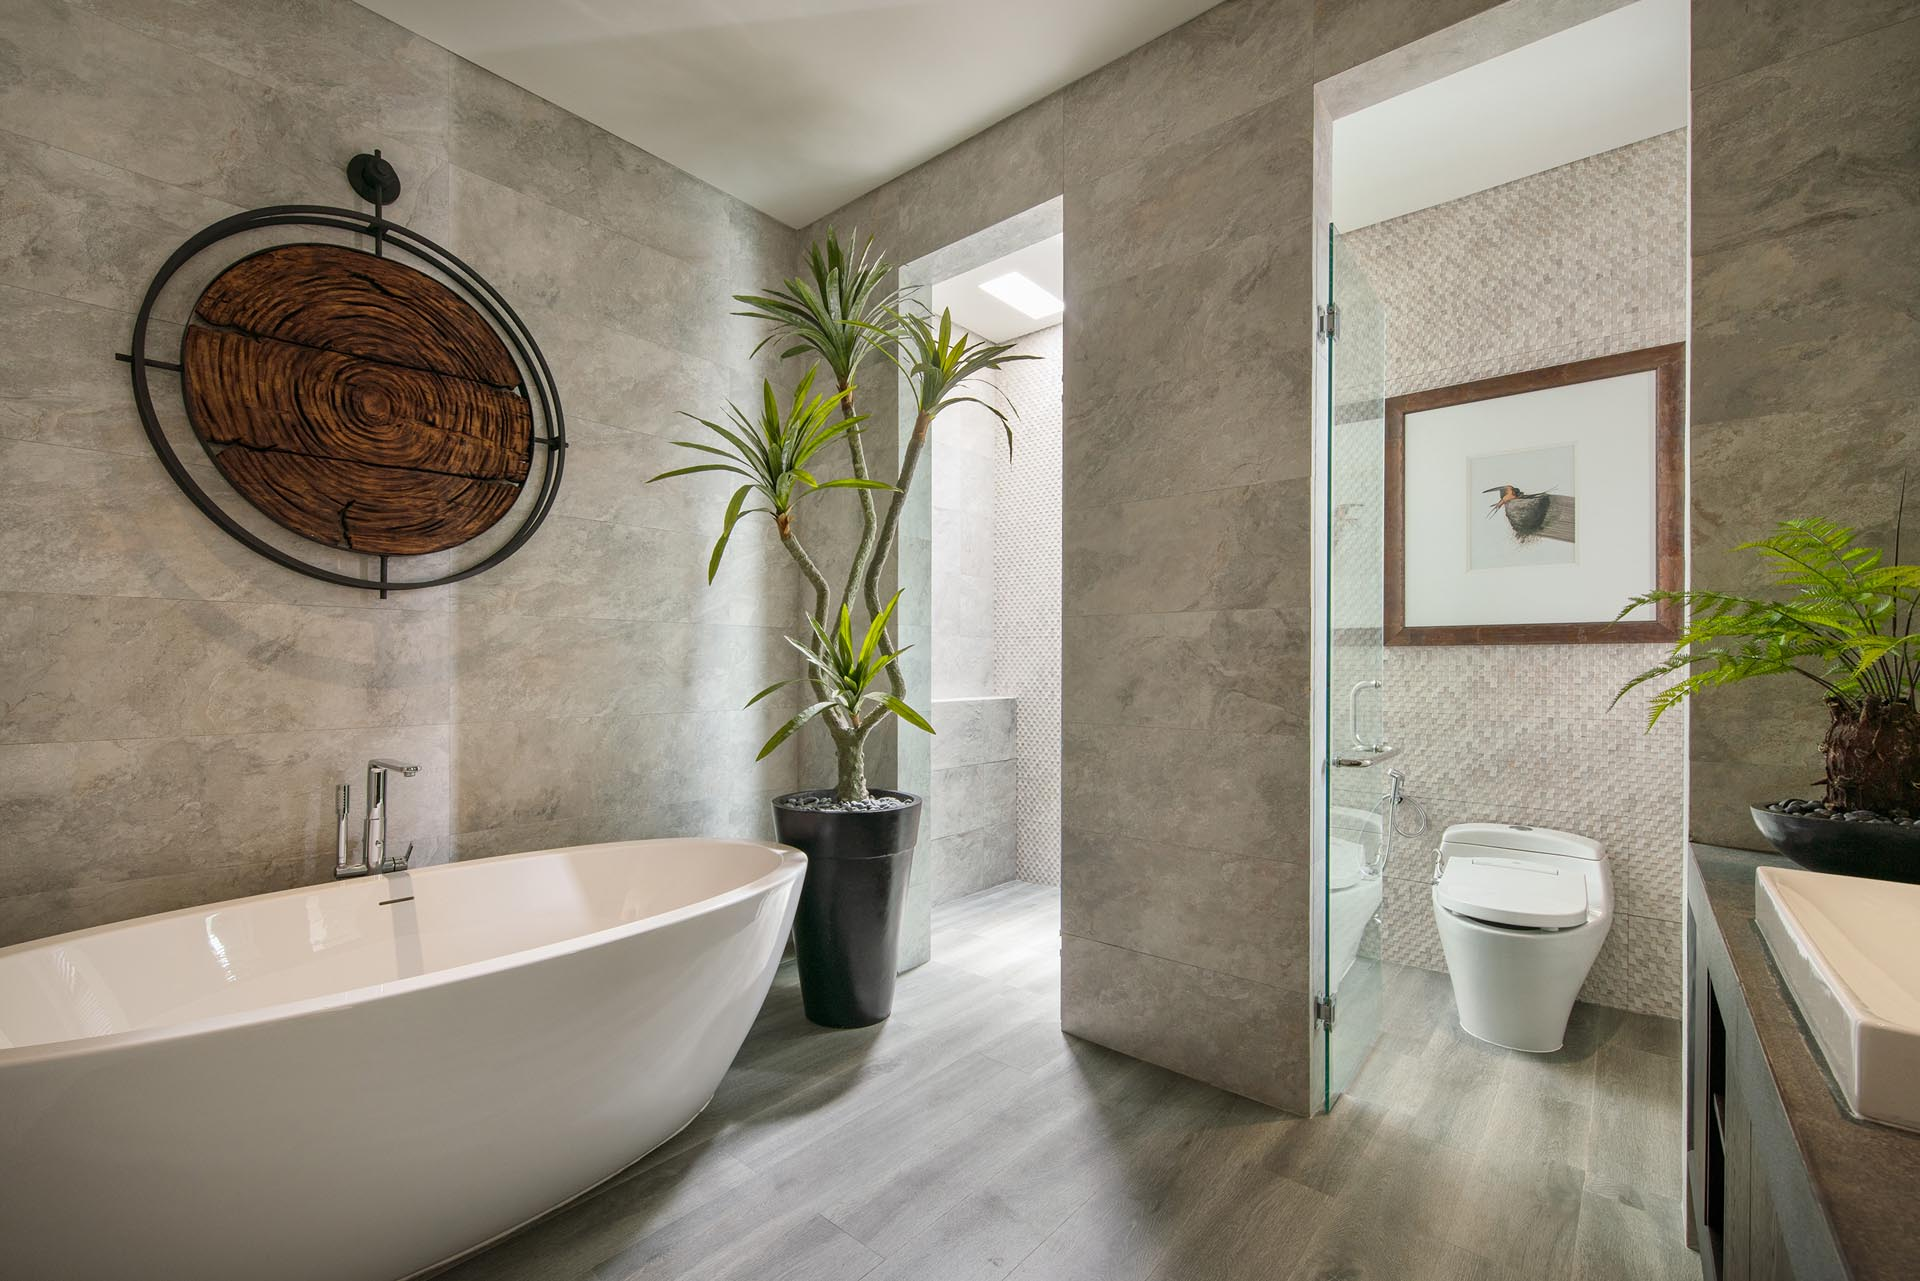 A modern bathroom with a freestanding bathtub and floor-to-ceiling tiles.